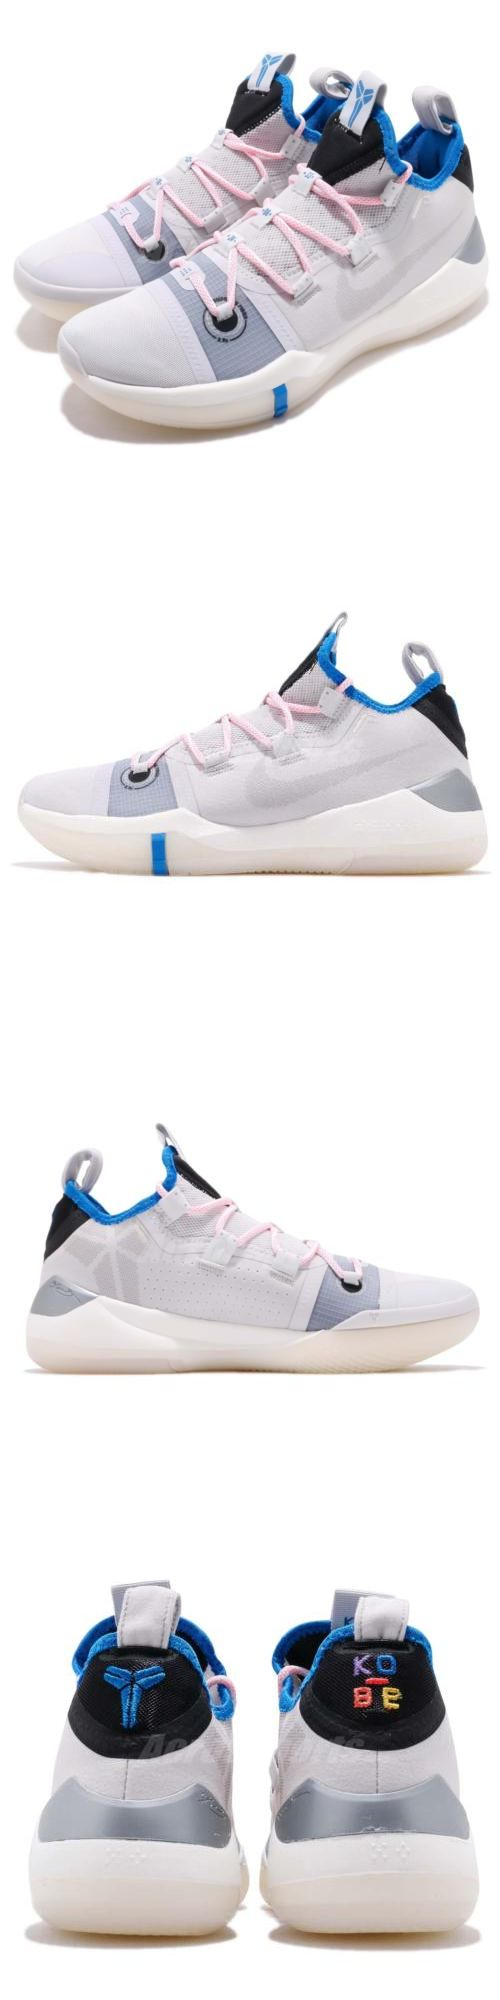 Clothing Shoes and Accessories 158963  Nike Kobe A.D. Ep Soft Pink Grey  Blue Kobe Bryant Ad Basketball Shoes Av3556-004 -  BUY IT NOW ONLY   149.99  on  eBay ... e572a8e82f